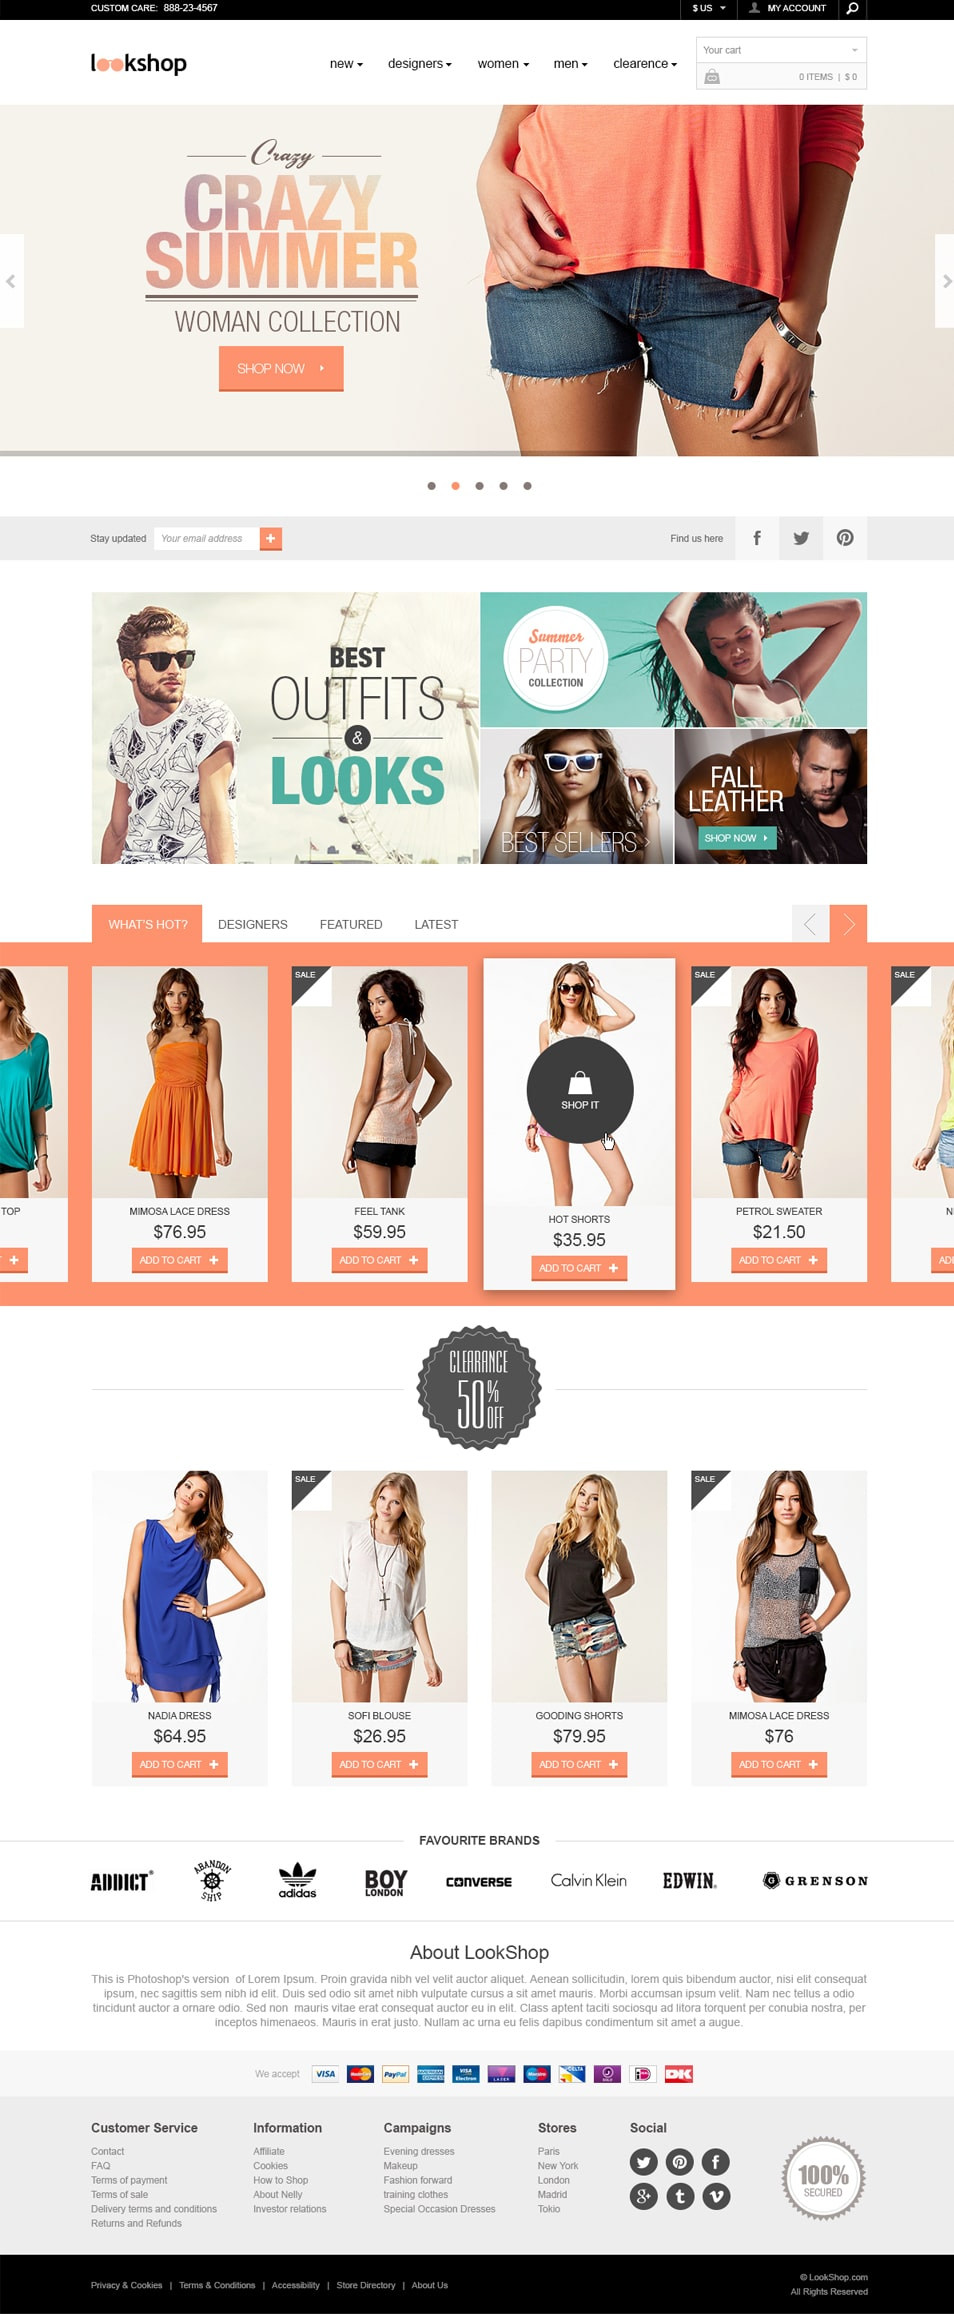 LookShop – E-commerce Responsive Design Template